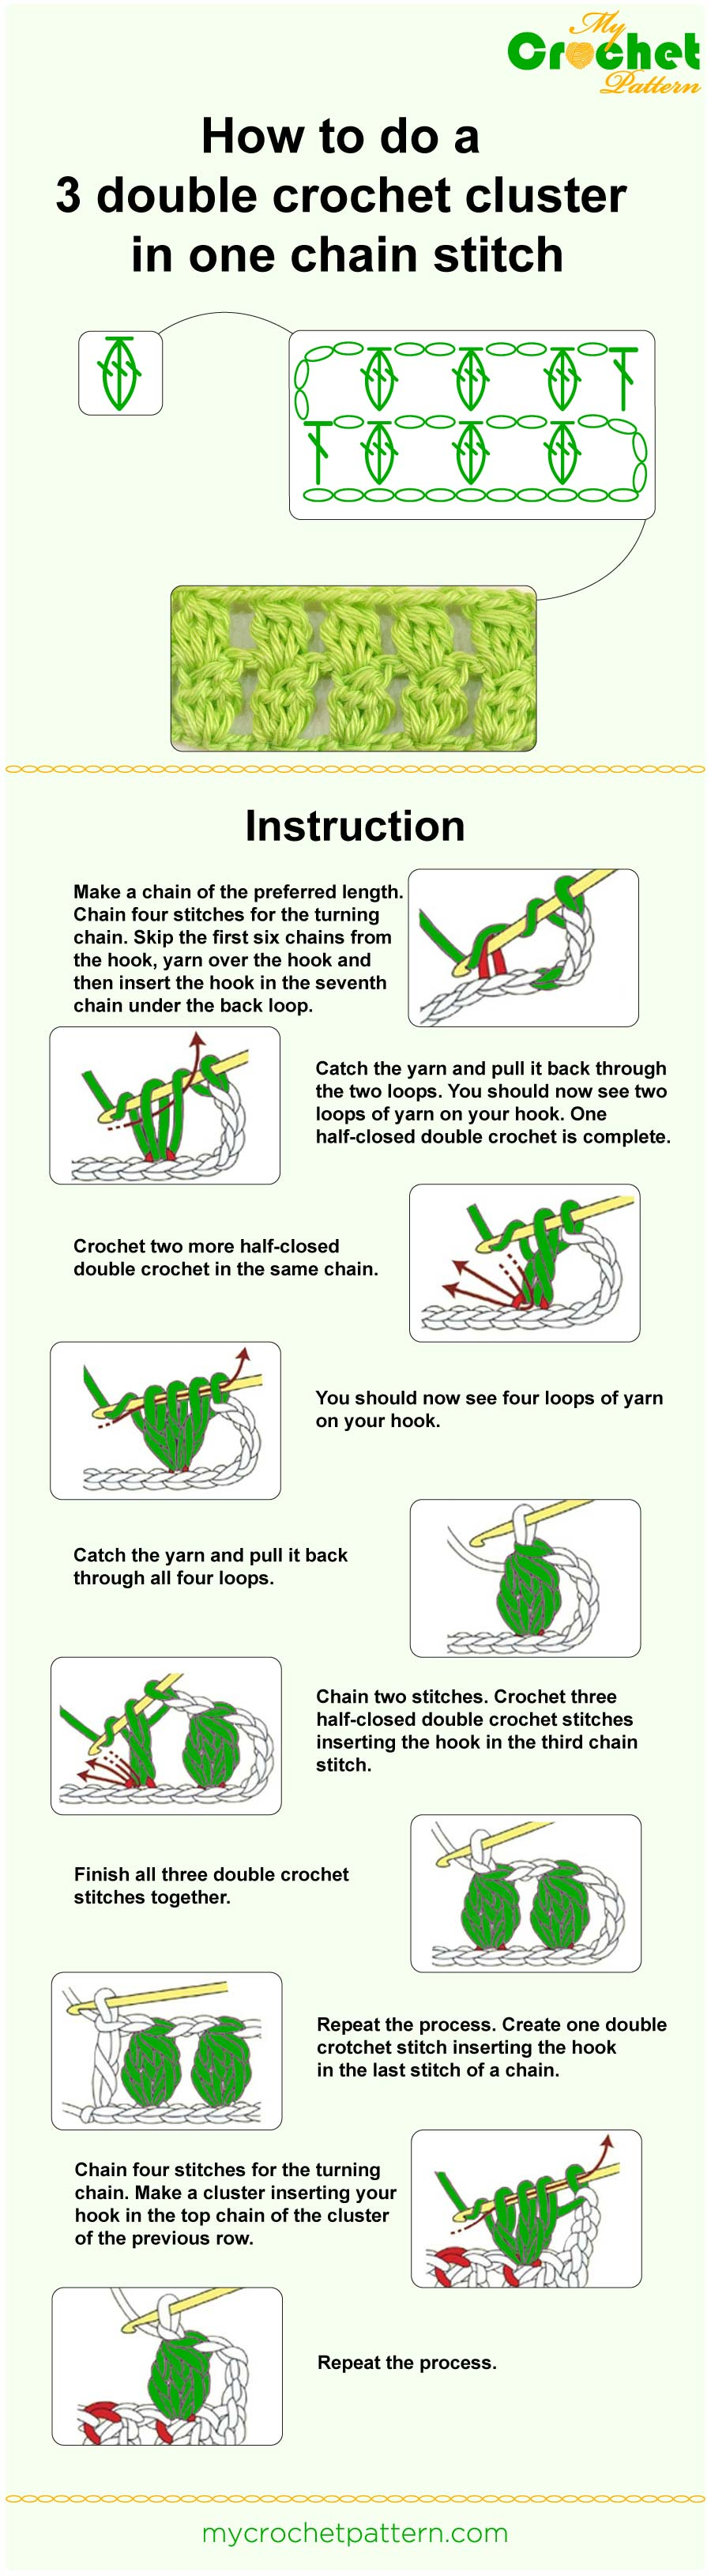 how to do a 3 double crochet cluster in one chain stitch - infographic